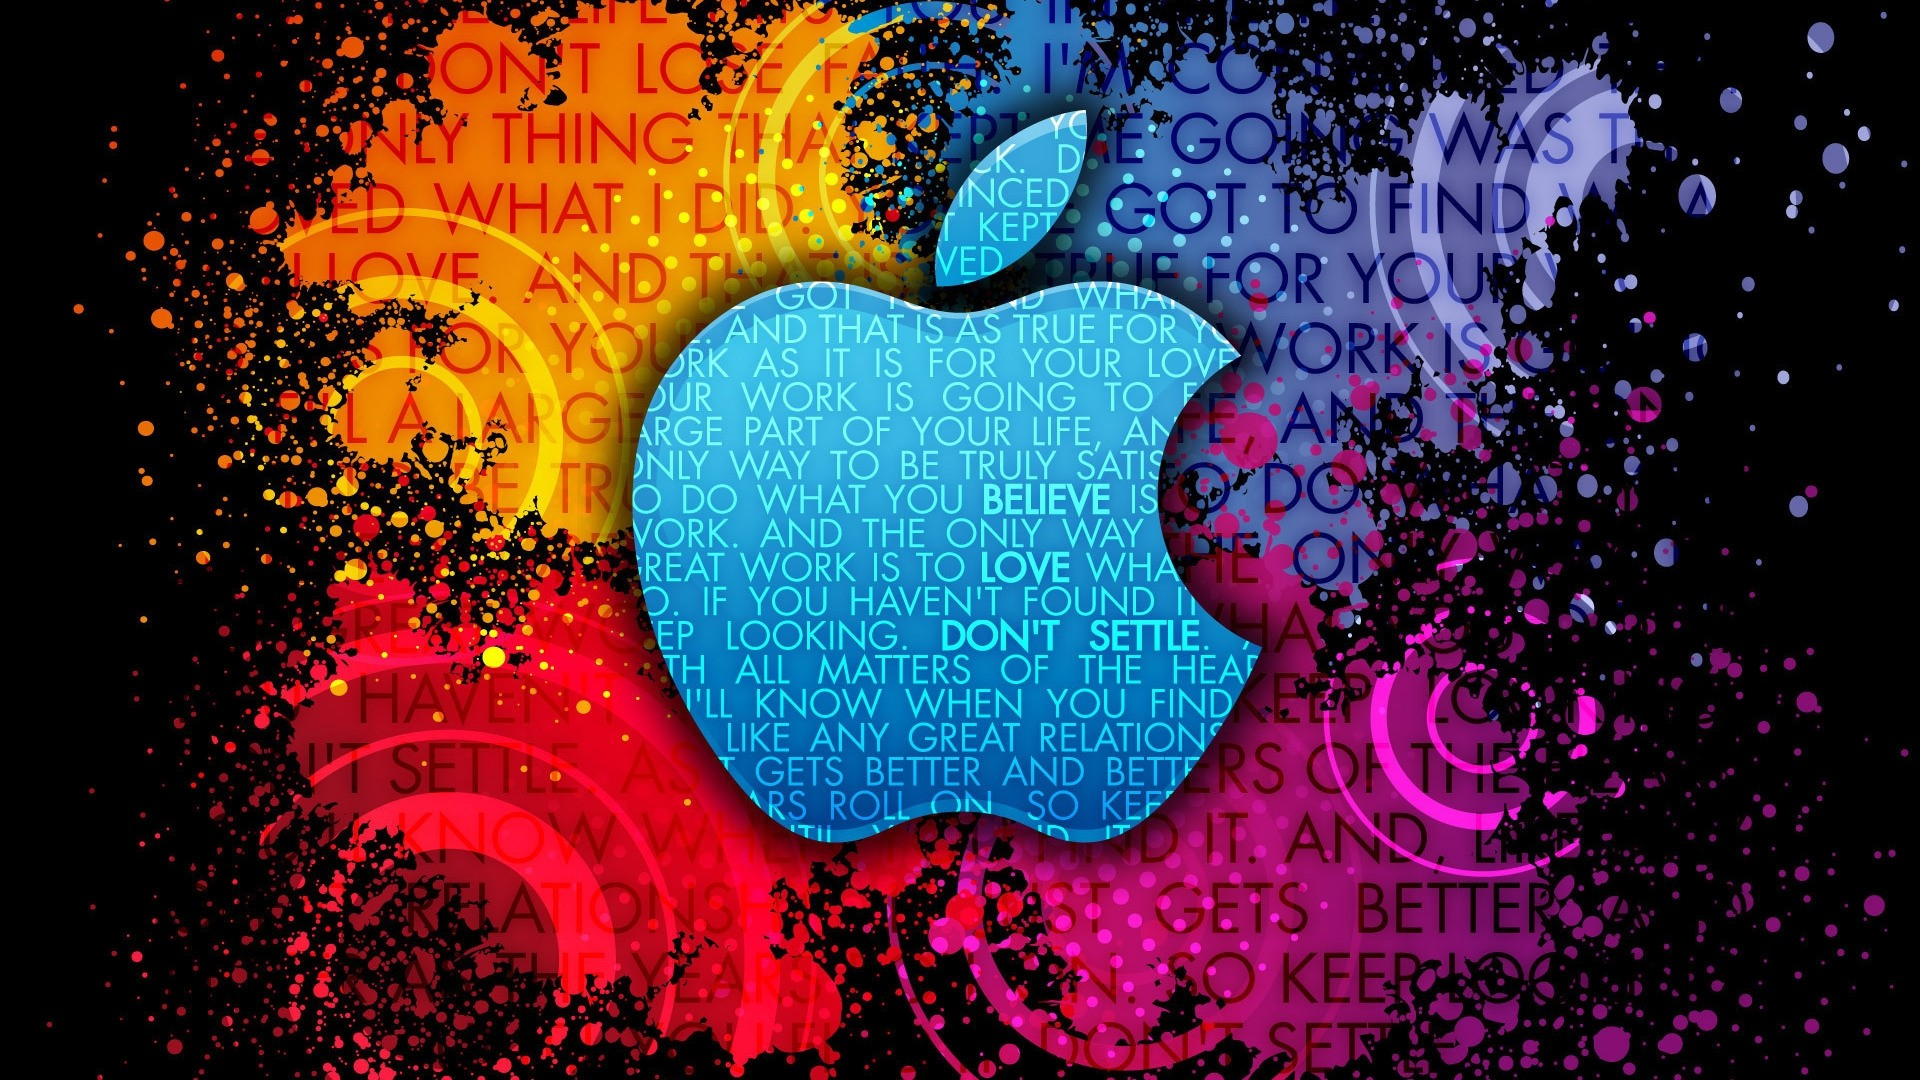 Apple Logo Wallpapers Download Desktop Wallpaper Images 1920x1080